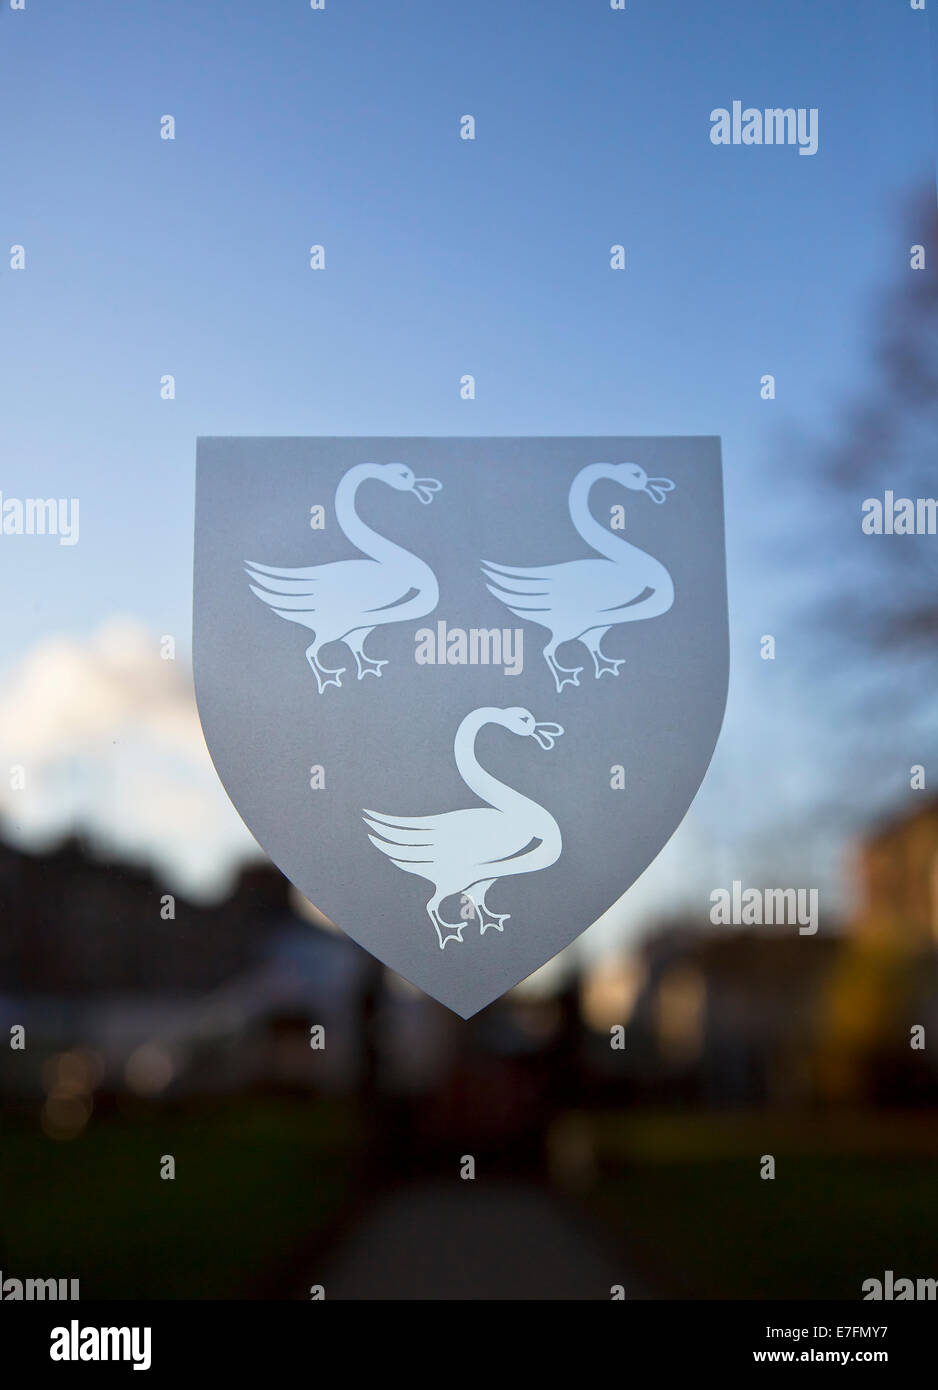 Three swans on Selby abbey's door. - Stock Image